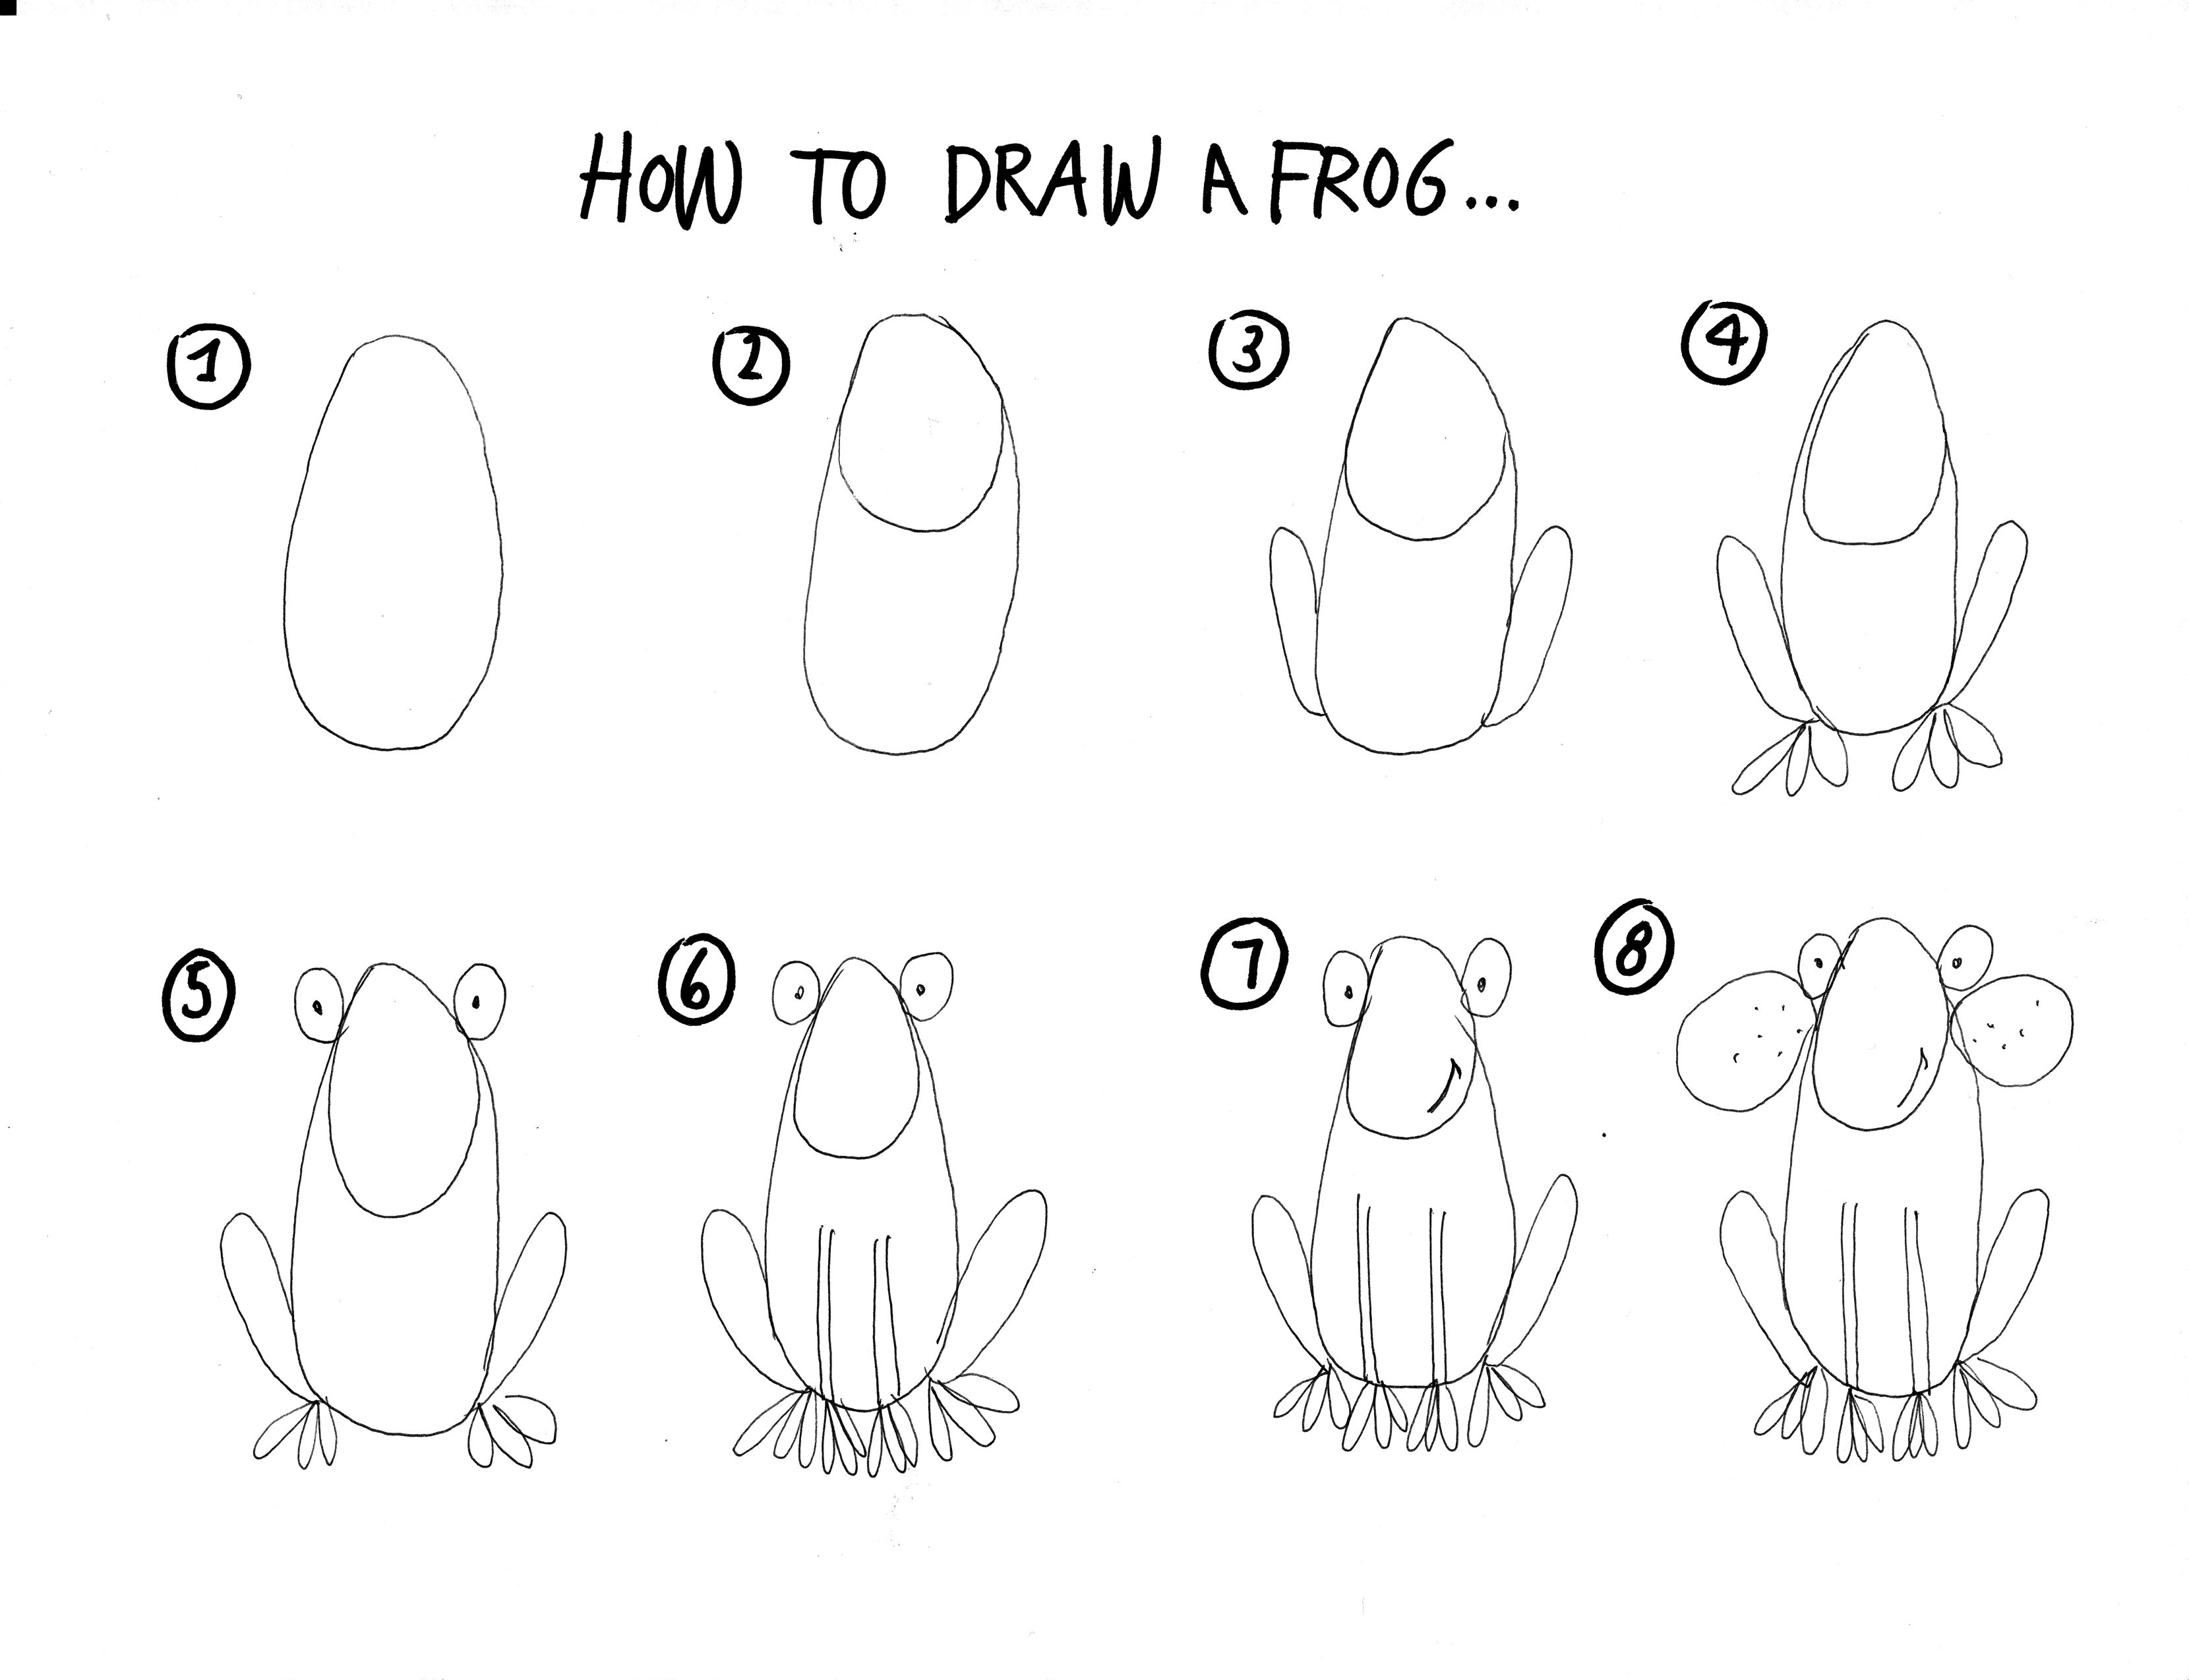 how to draw a frog httpwwwhow to draw cartoons onlinecomimage fileshow draw a how to frog